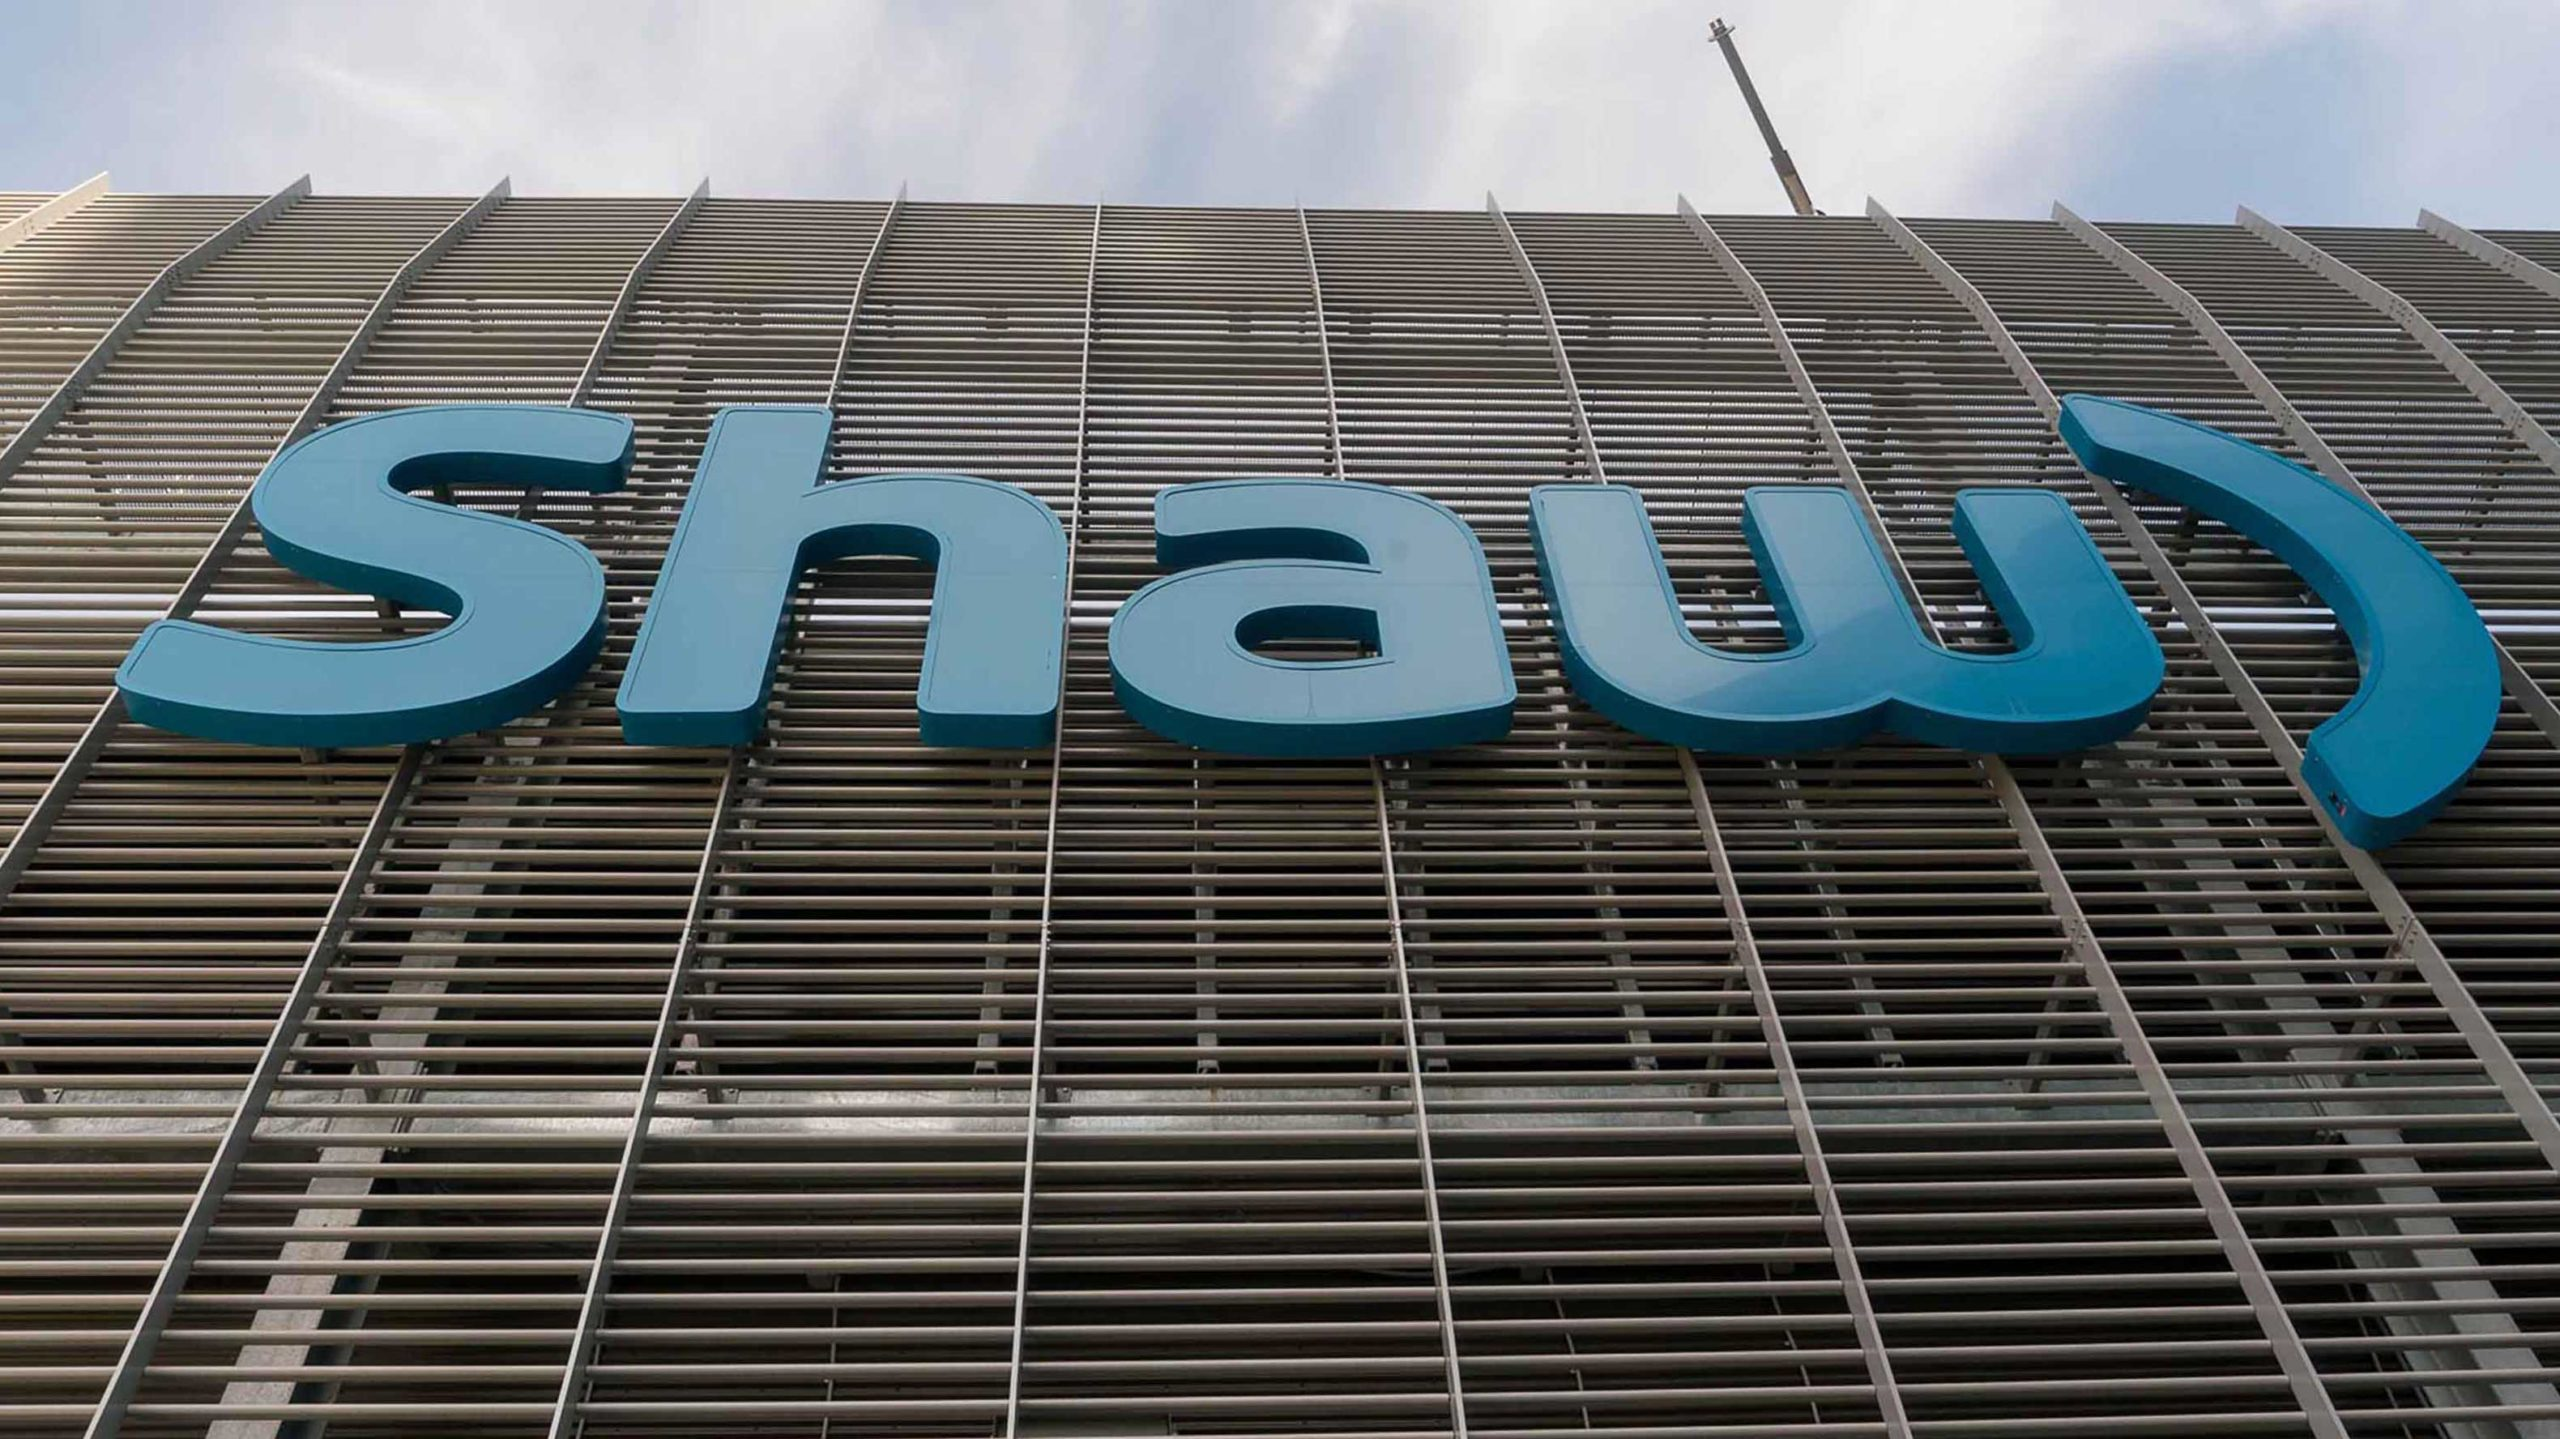 Shaw not participating in government's 3500MHz spectrum auction  image